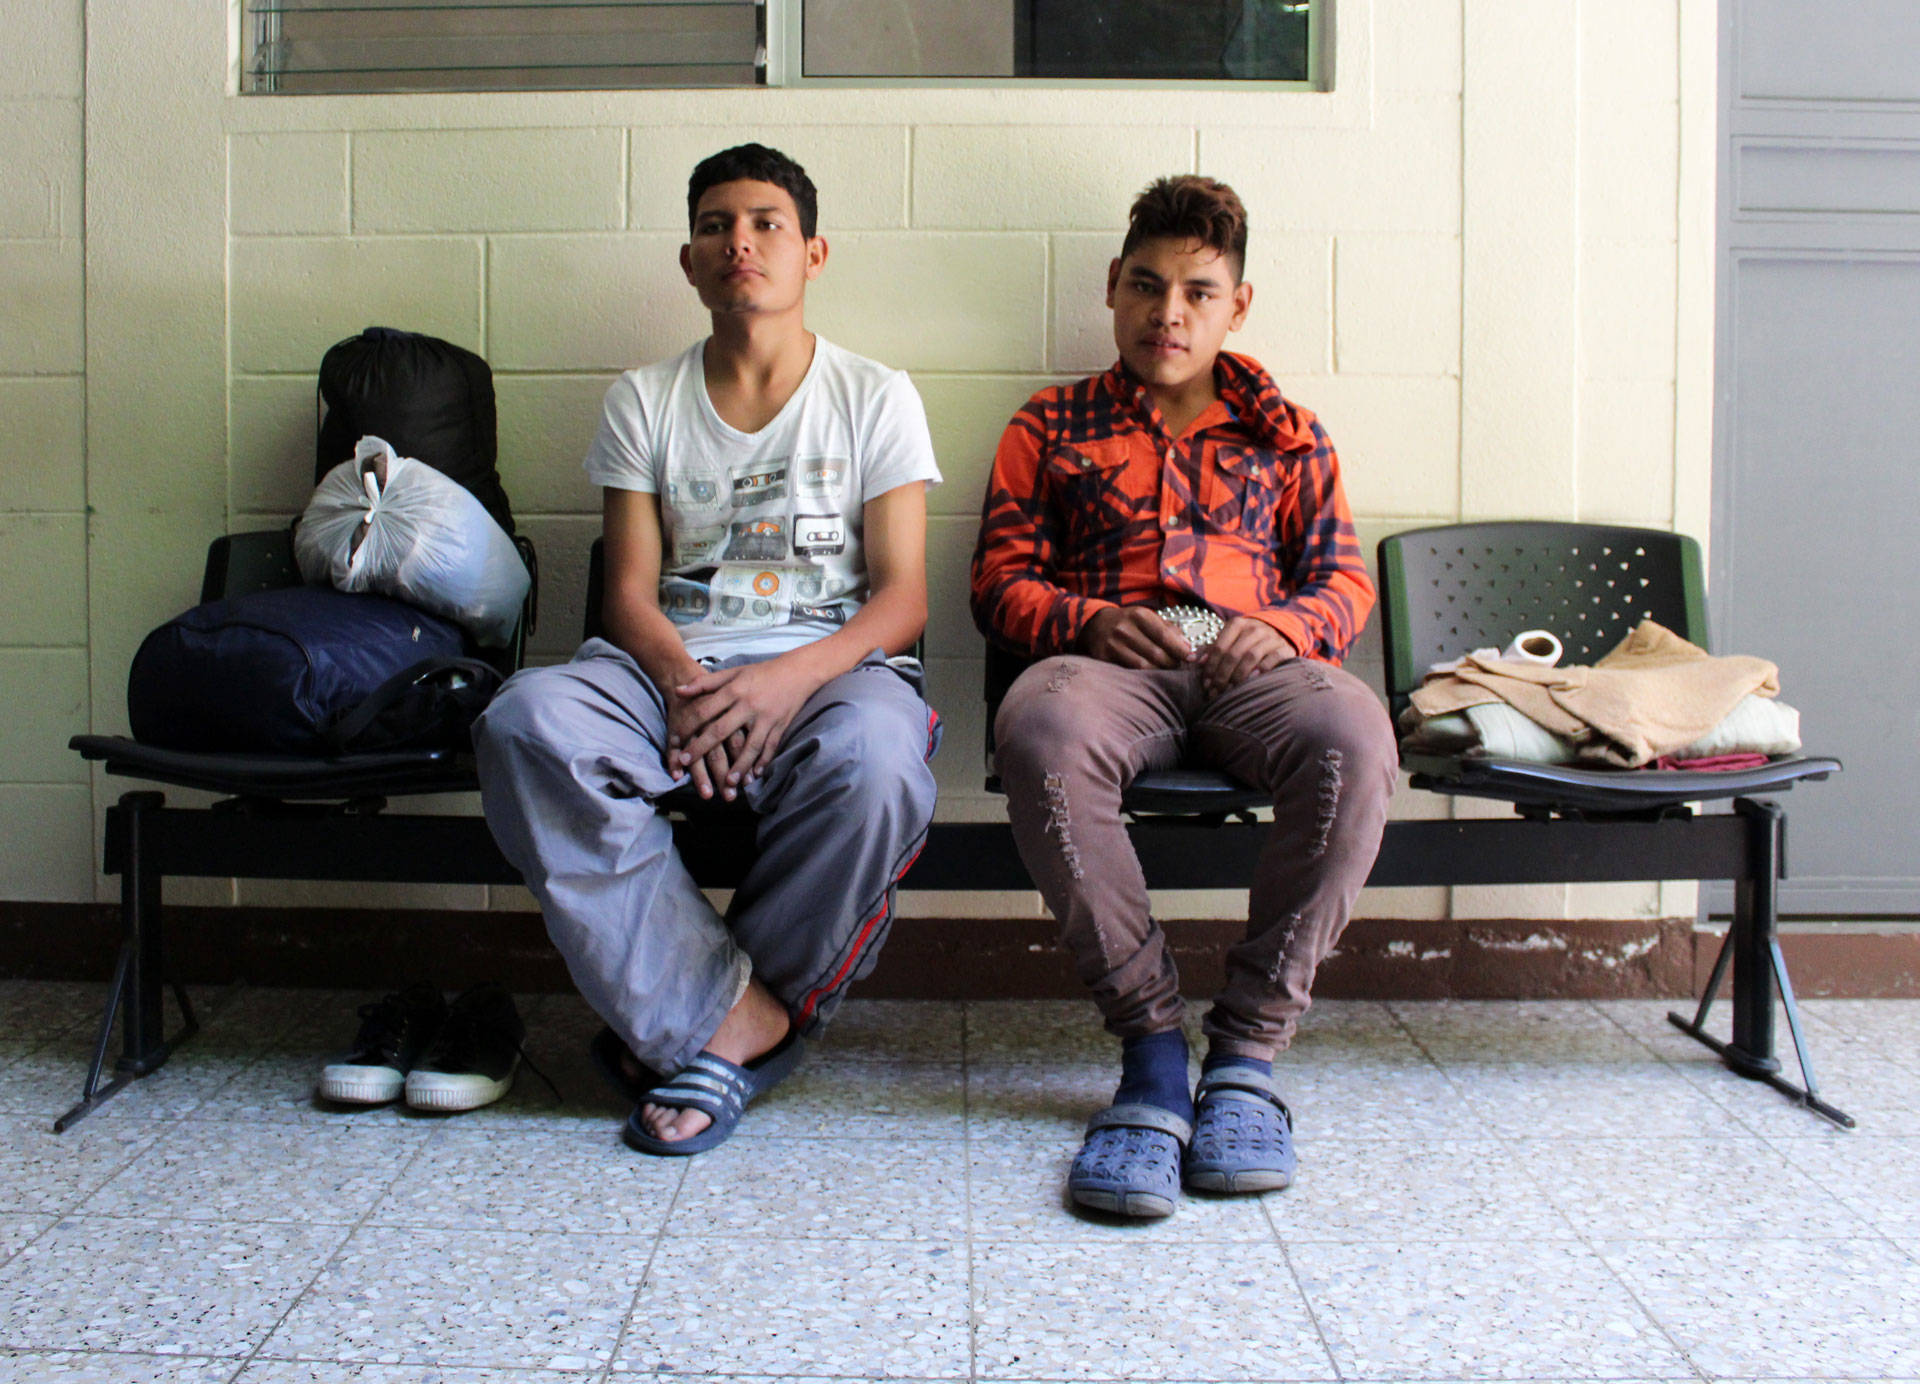 Two men wait for social services in Zona 1, Guatemala City. John Sepulvado/KQED